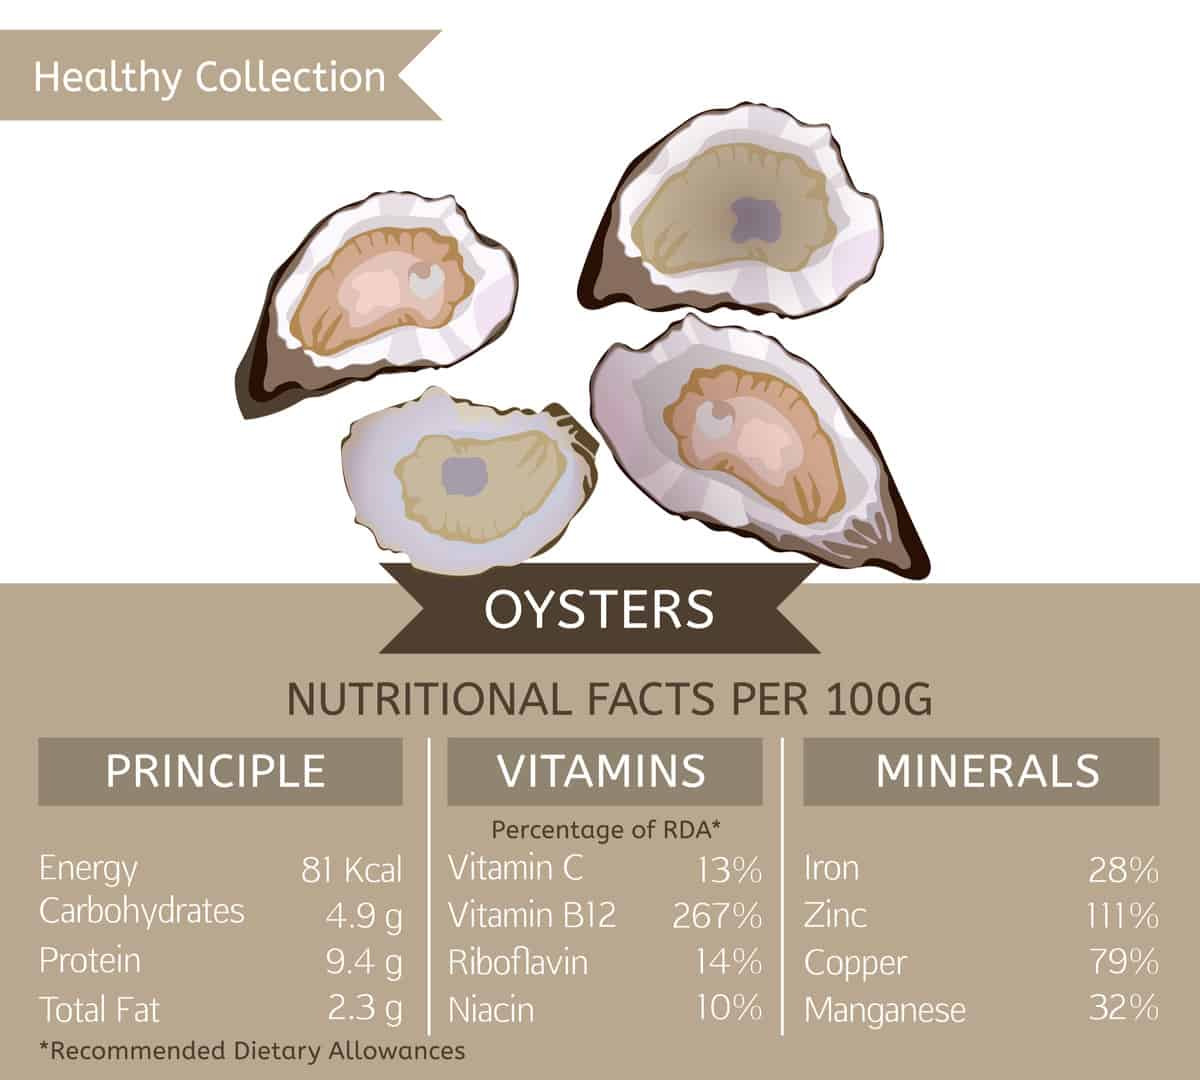 Oyster nutritional facts chart